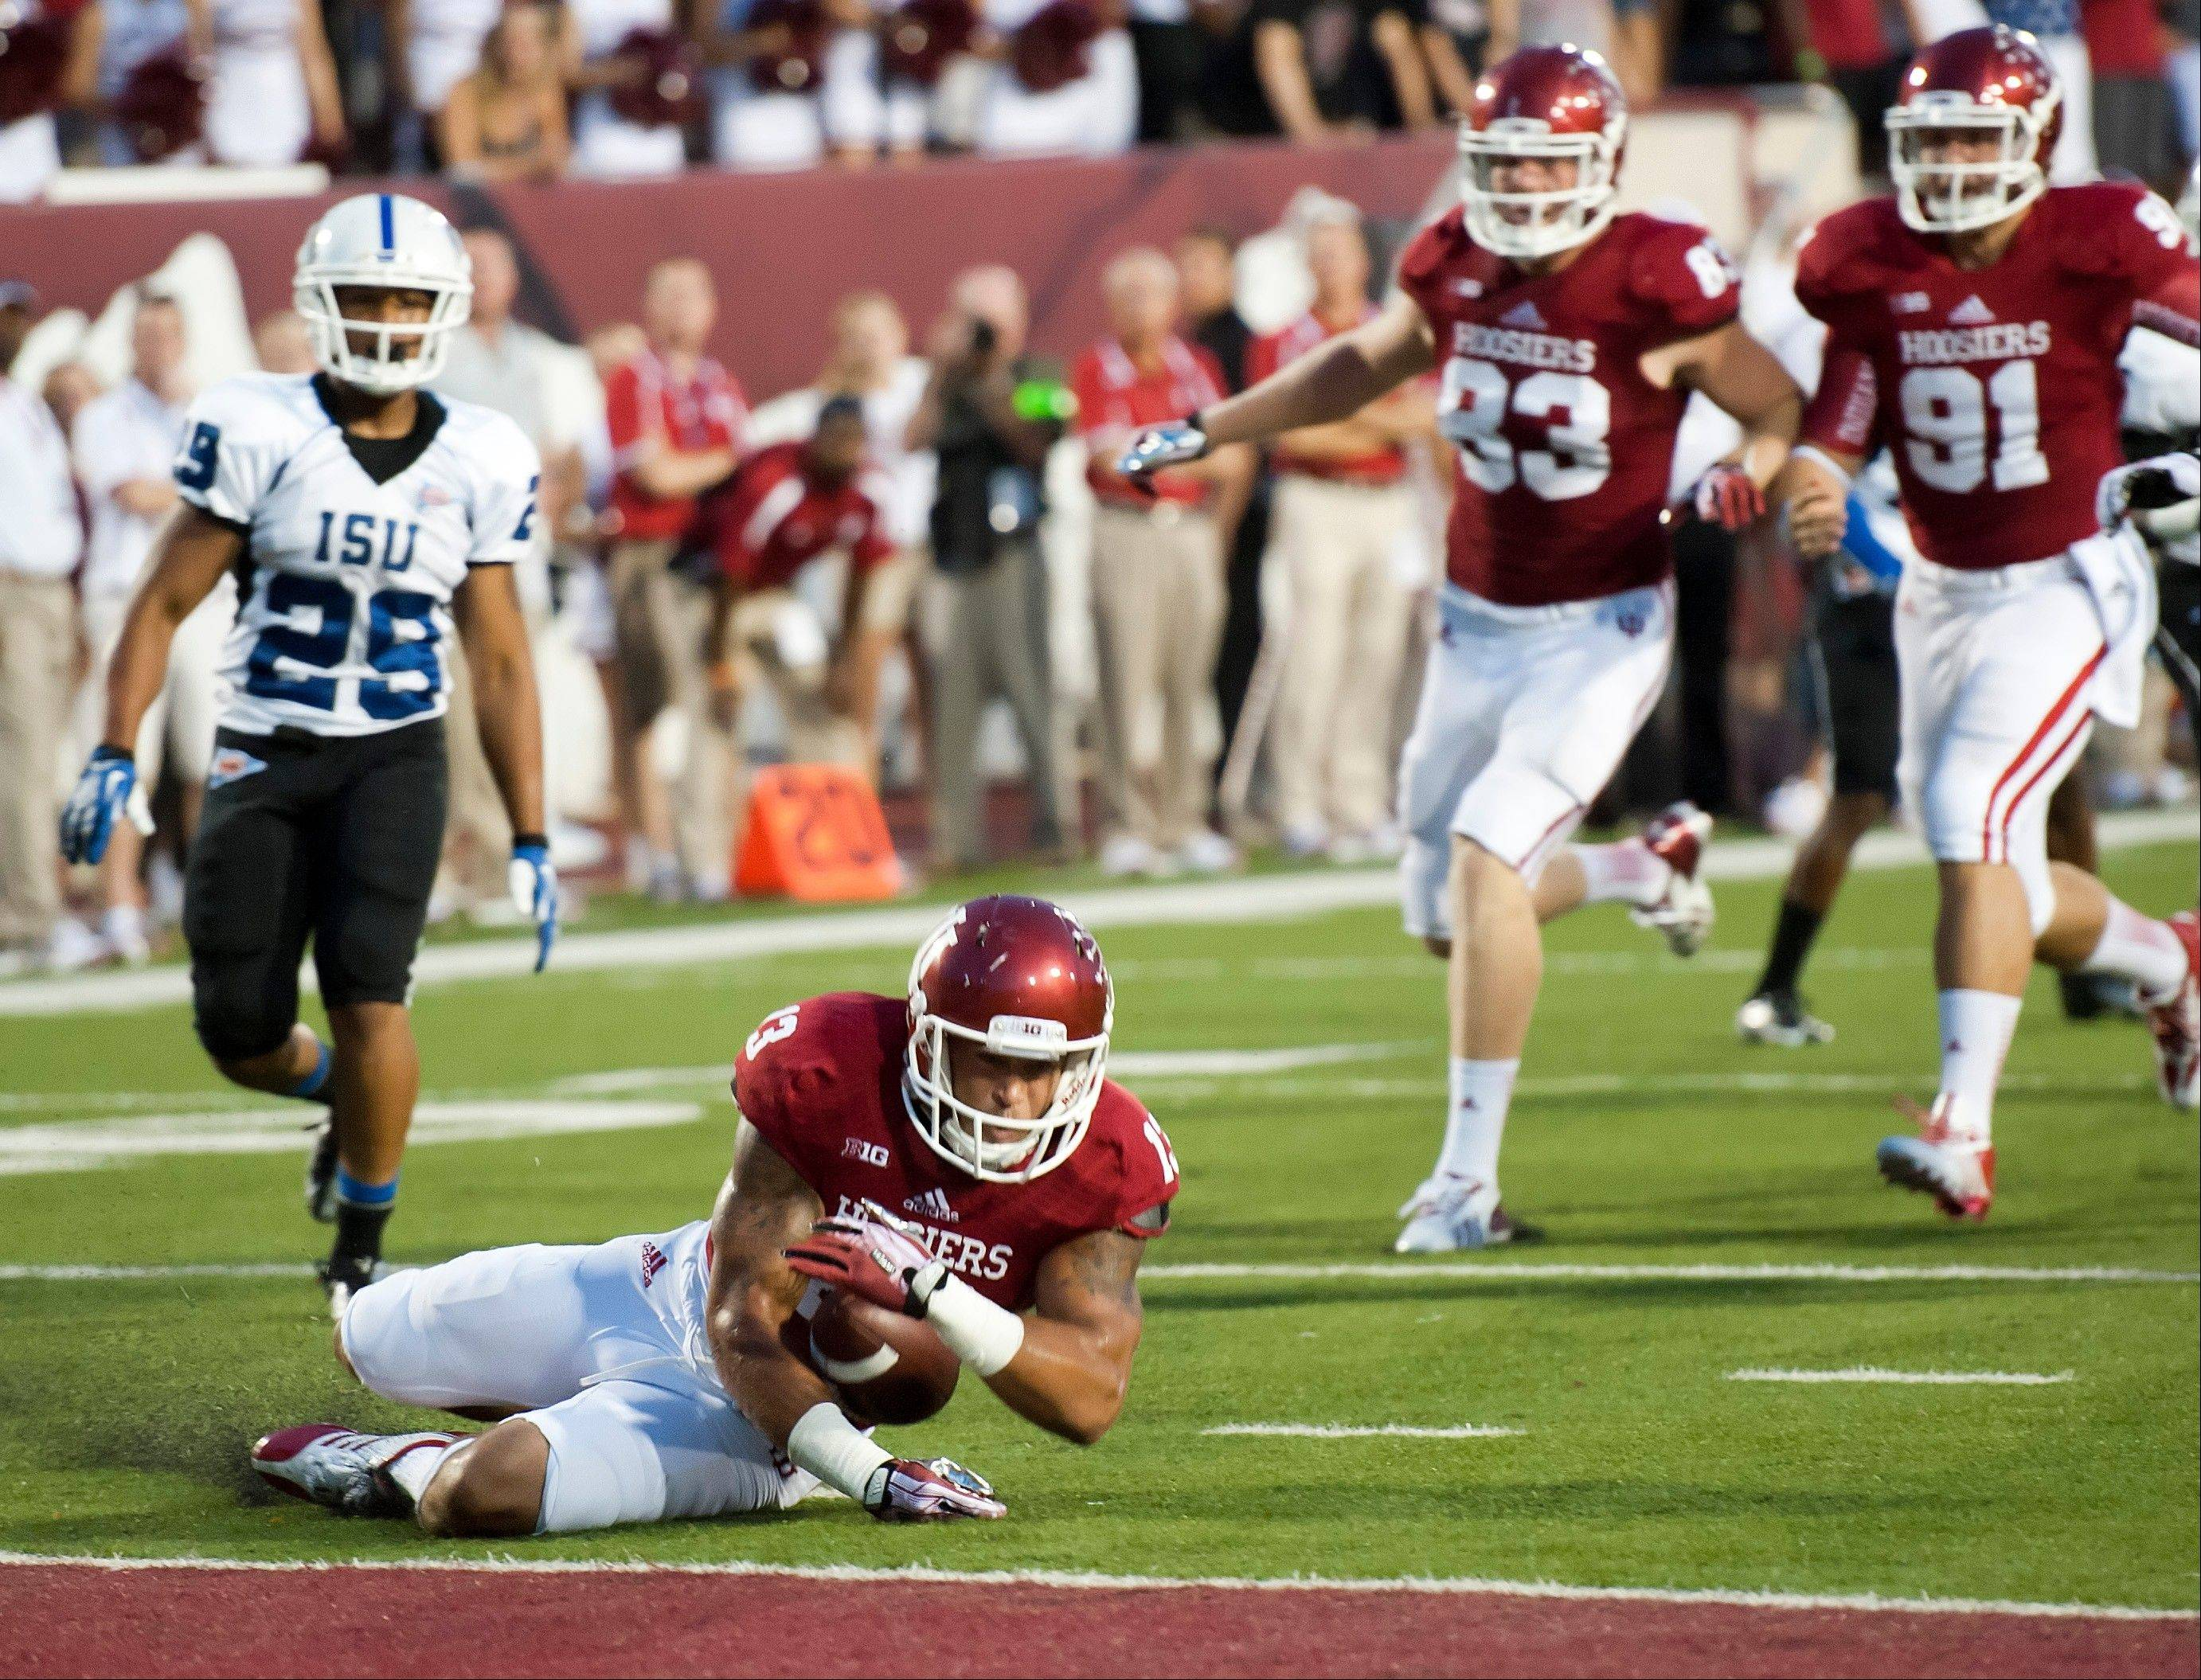 Indiana�s Kofi Hughes downs a punt at the goal line during Thursday�s game against Indiana State in Bloomington, Ind.